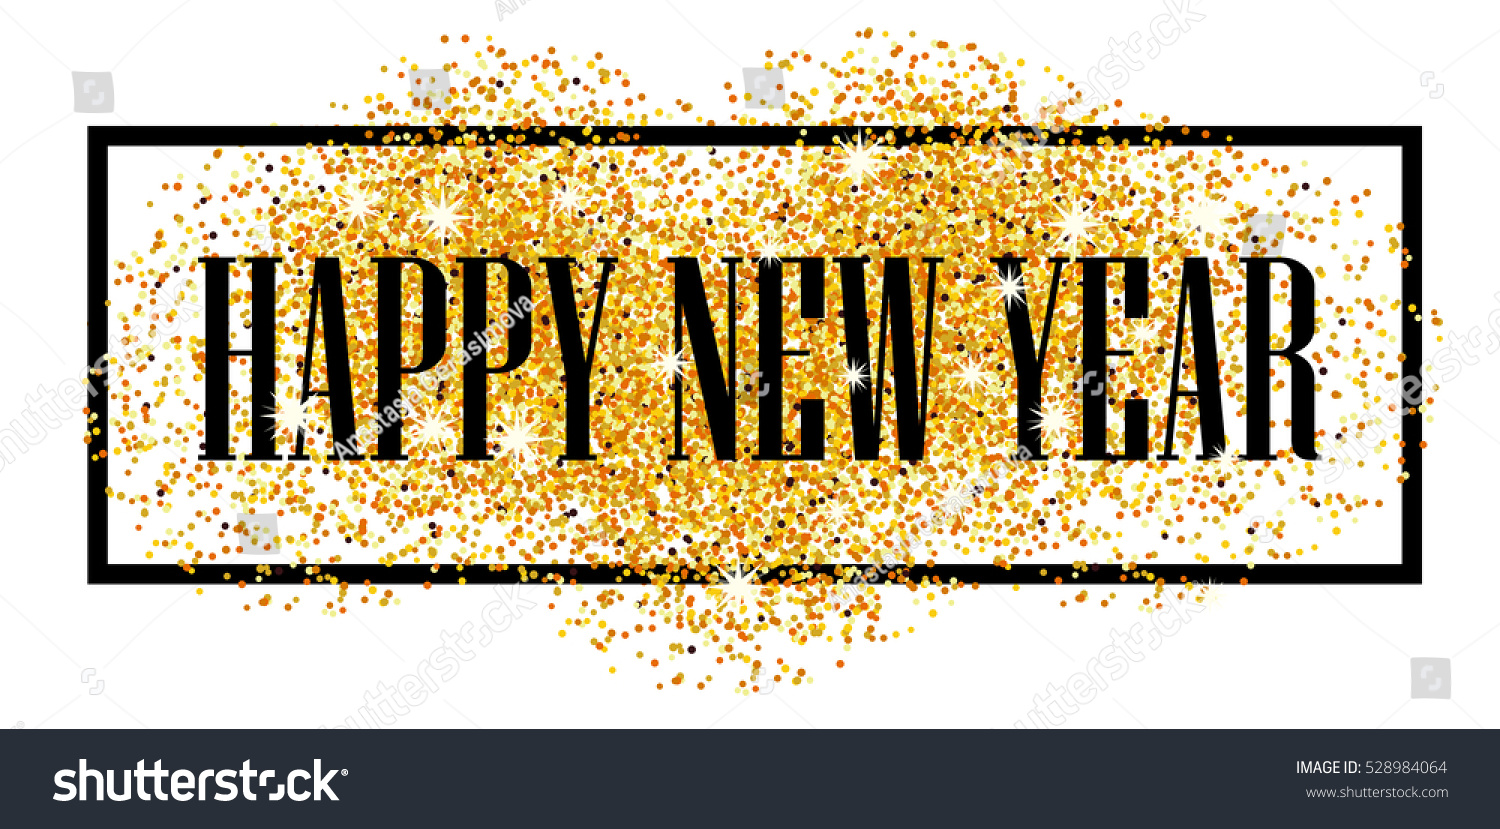 2017 happy new year gold glitter new year abstract golden background for text